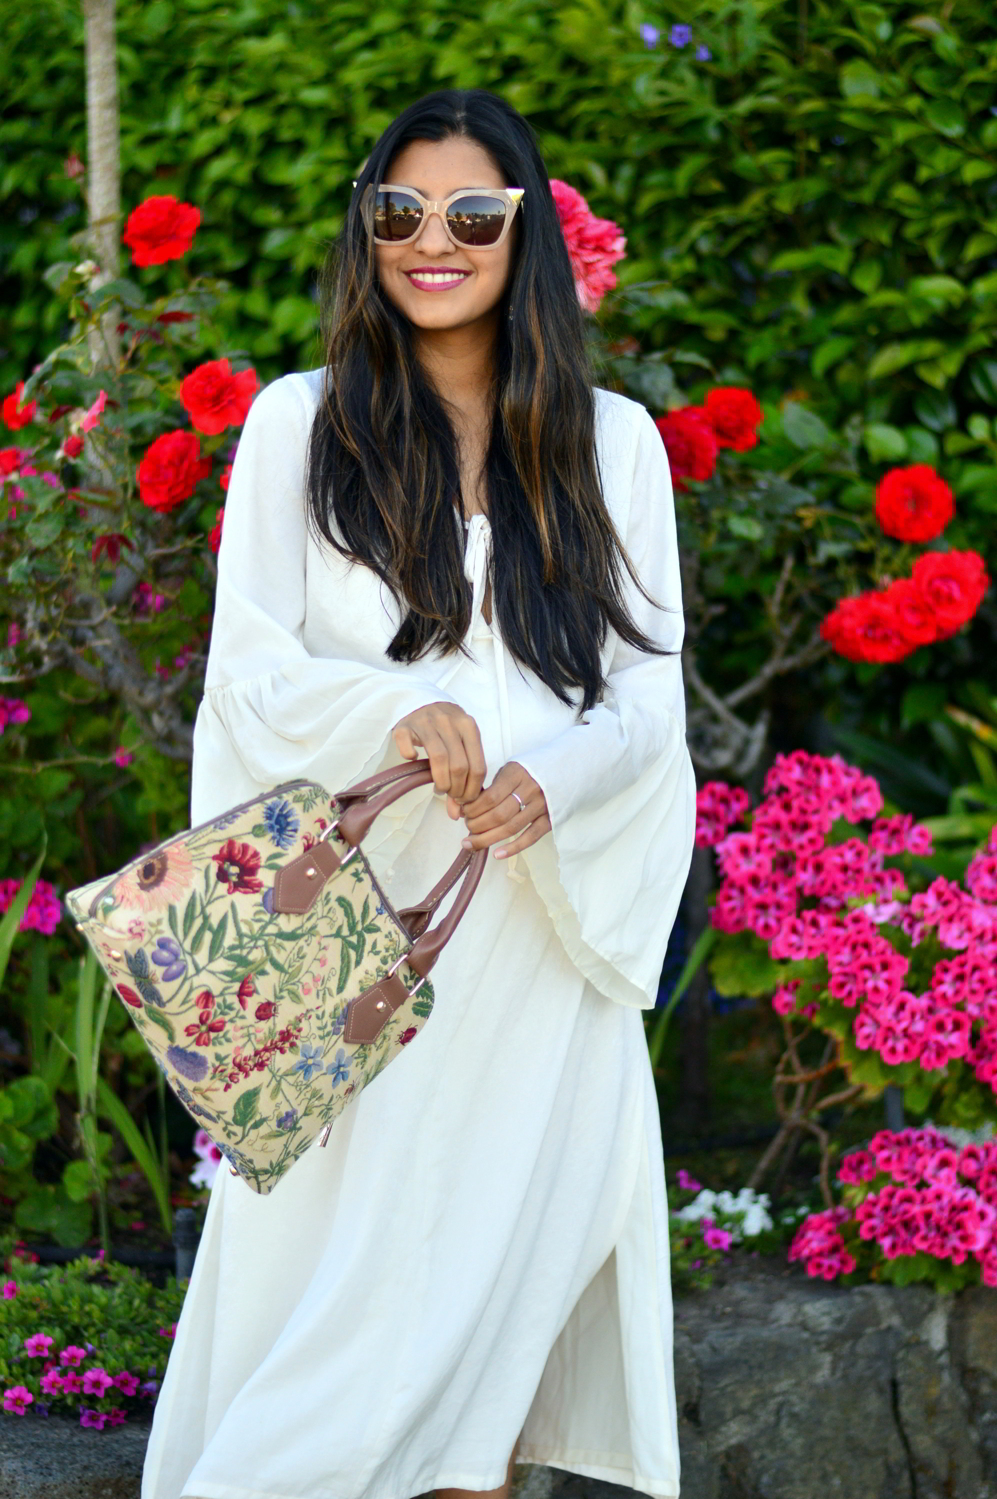 bell-sleeves-white-summer-style-blogger-outfit-dress-floral-bag 2